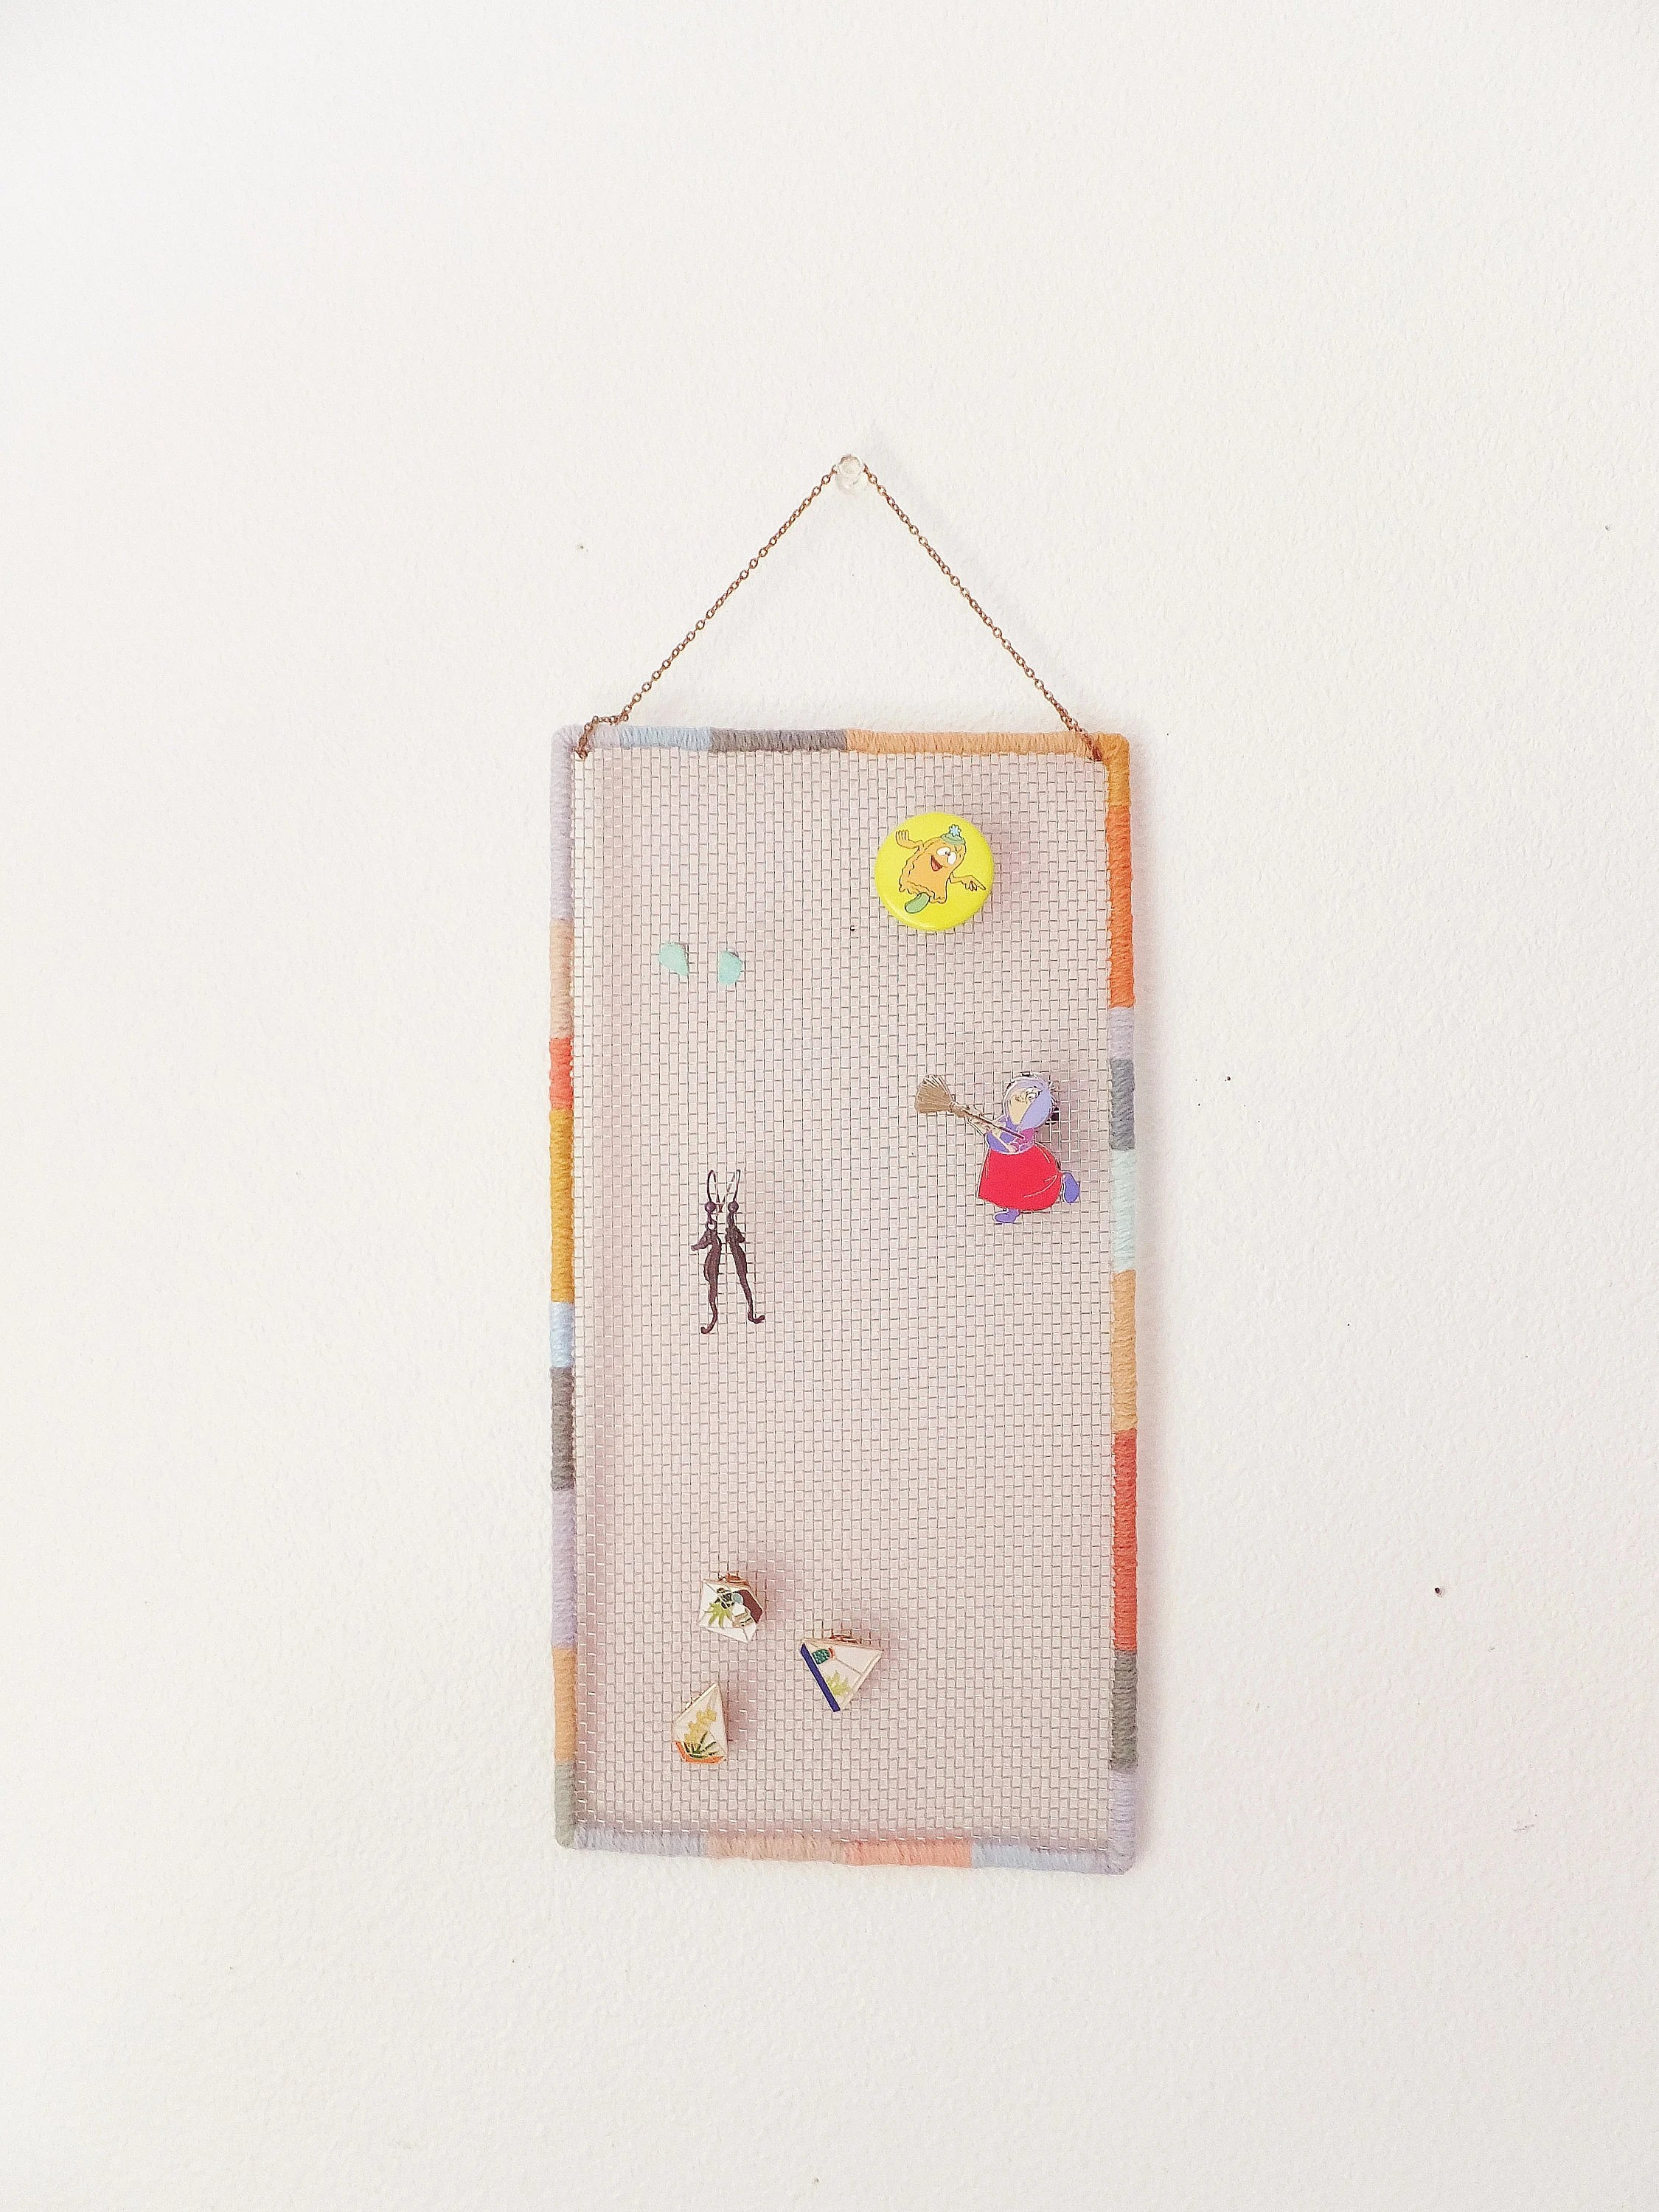 Mesh Earring Holder : earring, holder, Large, Earring, Holder, Pastel, Peach